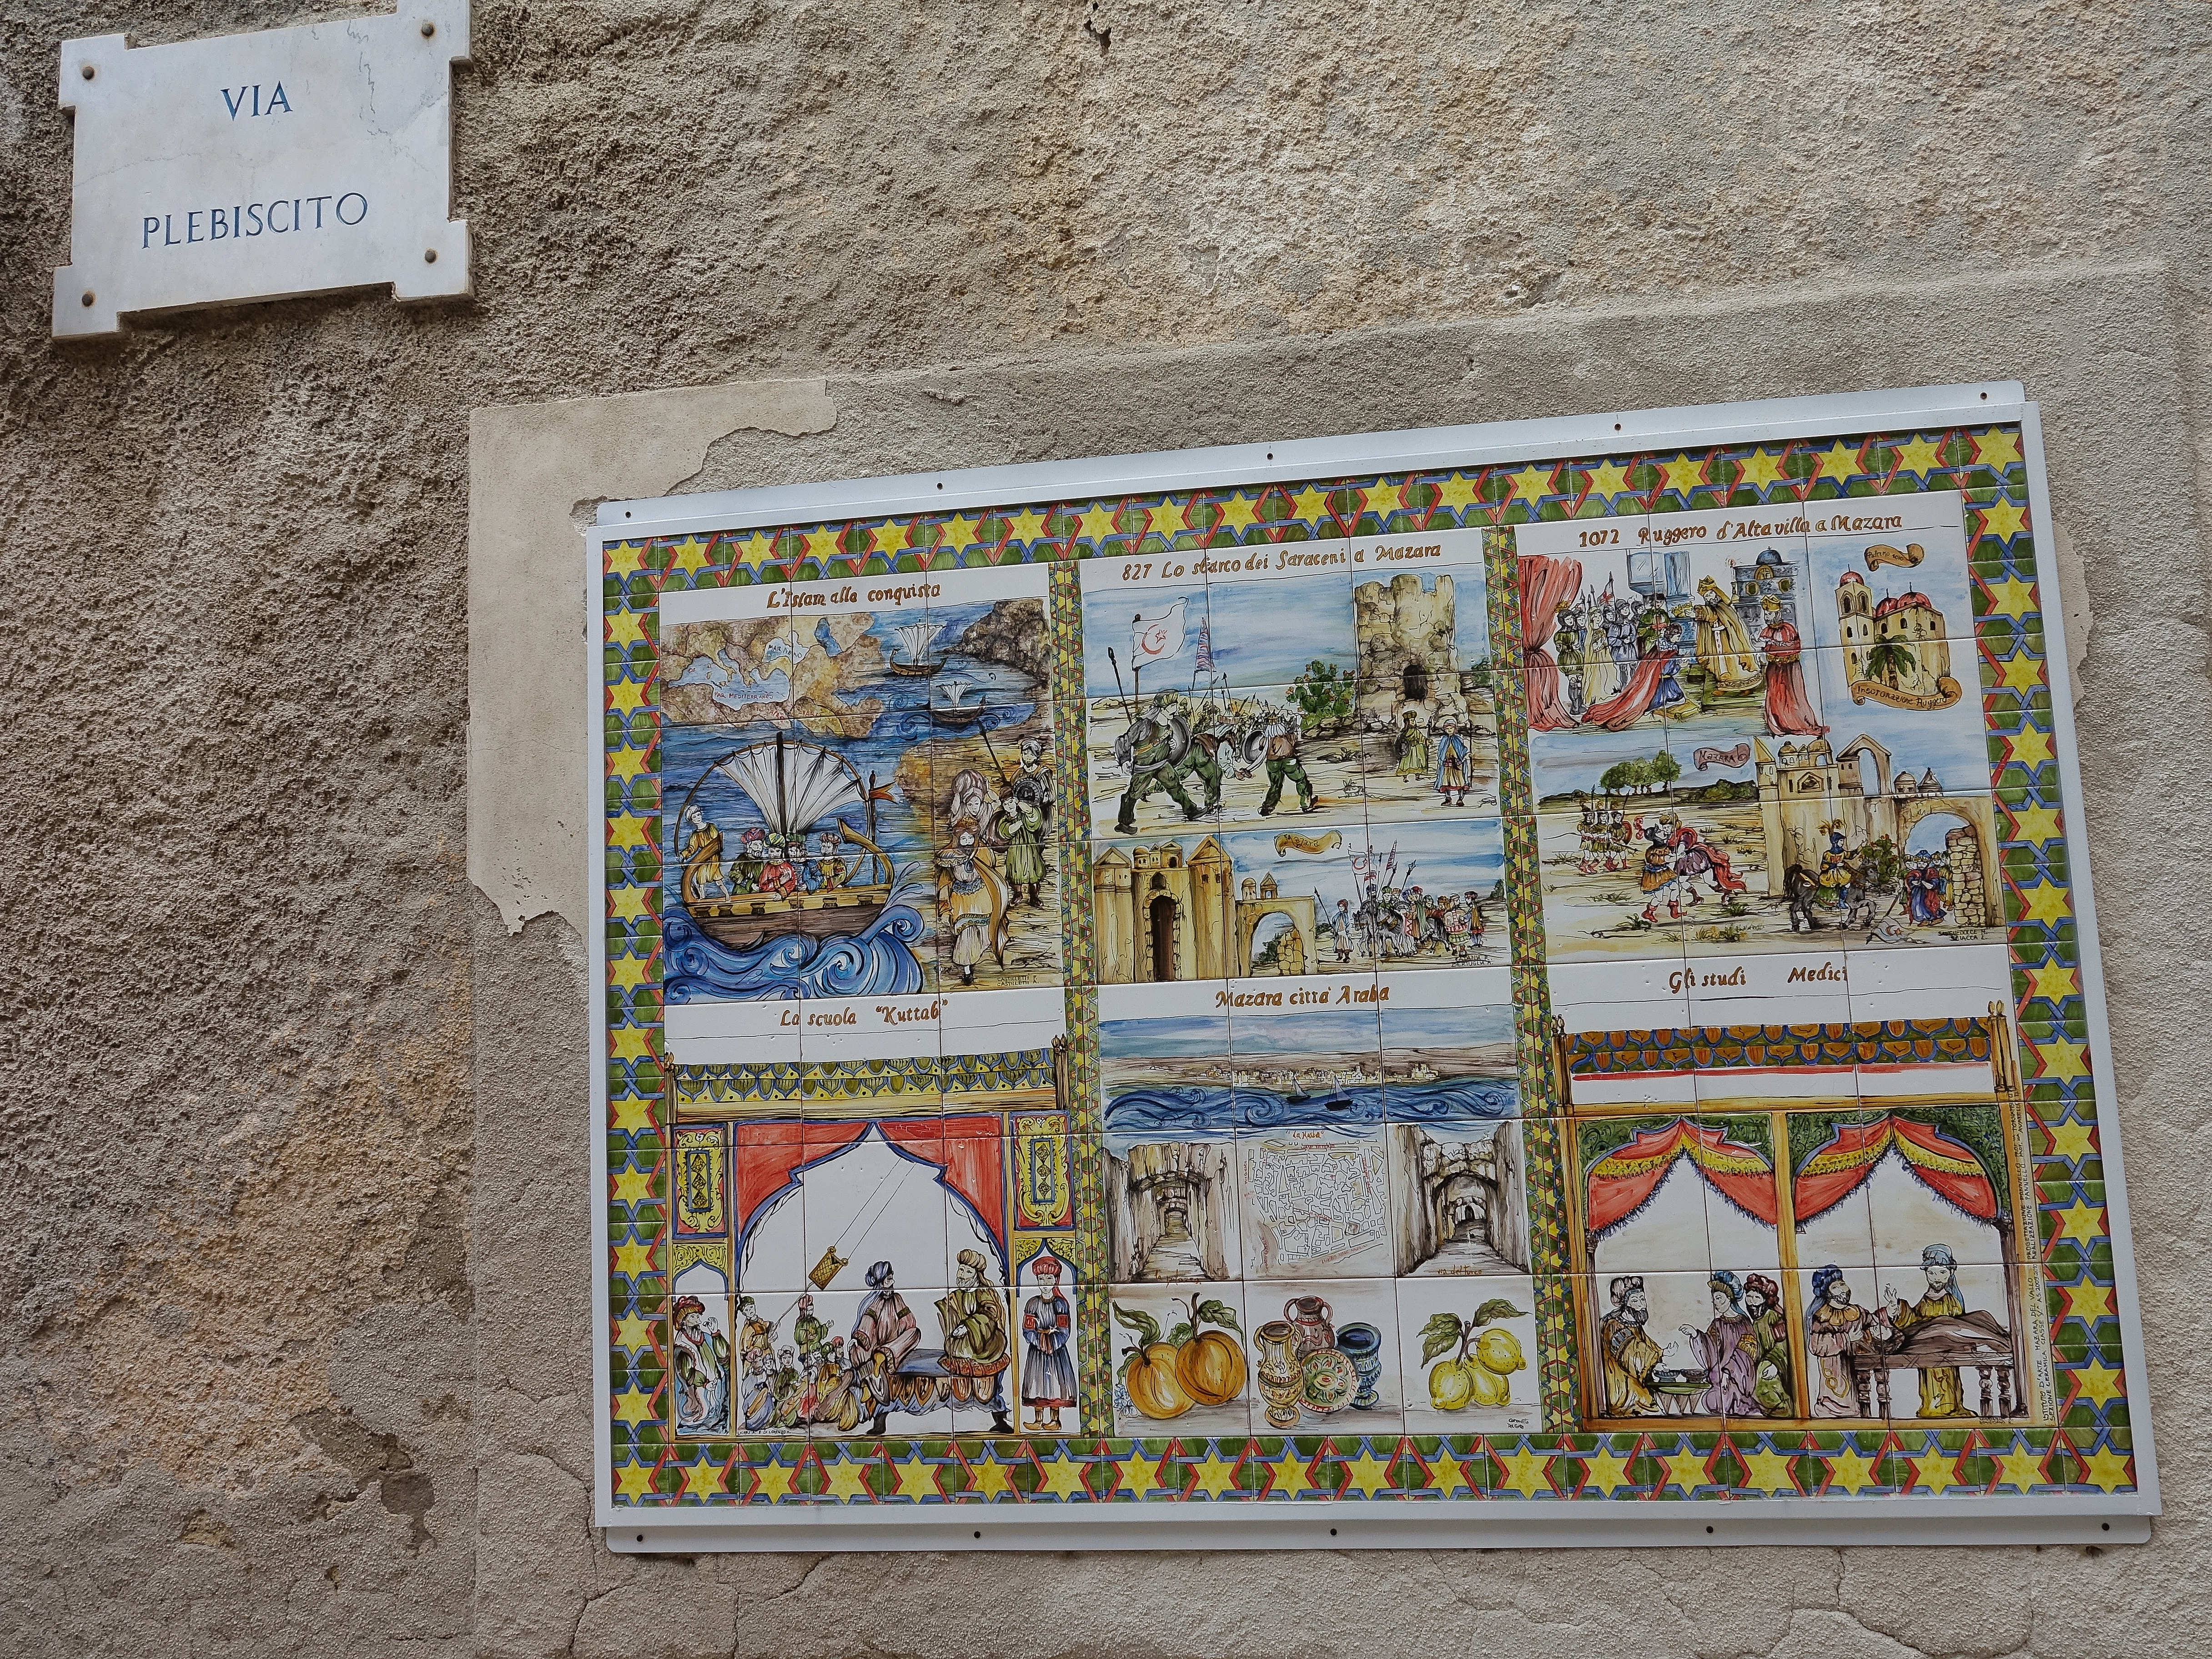 Old town tilework showing the Arabic conquest and Muslim influence